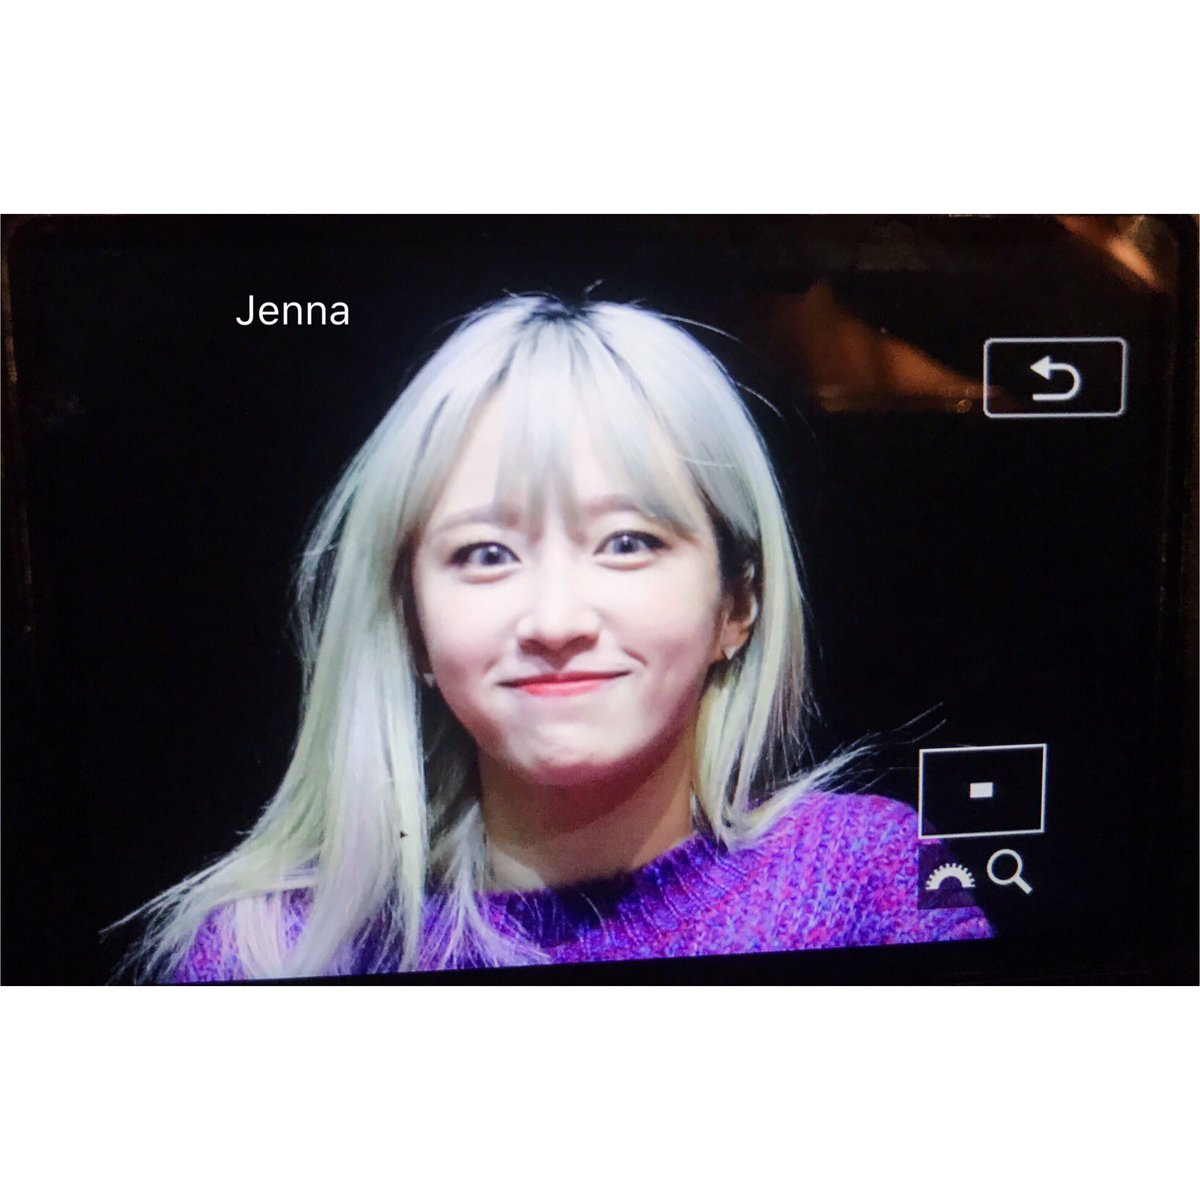 171118 &lt;#덜덜덜#ㄷㄷㄷ#DDD&gt; Fansign Event - Daegu[Preview] 妳好可愛 You are so cute 당신은 정말 귀여워요 HOPE EVERYONE KNOWS YOUR LOVELINESS YOU ARE MY SUNSHINE #EXID#Hani#하니#안희연 @ahnhani_92 <br>http://pic.twitter.com/5JoK5VwEEJ